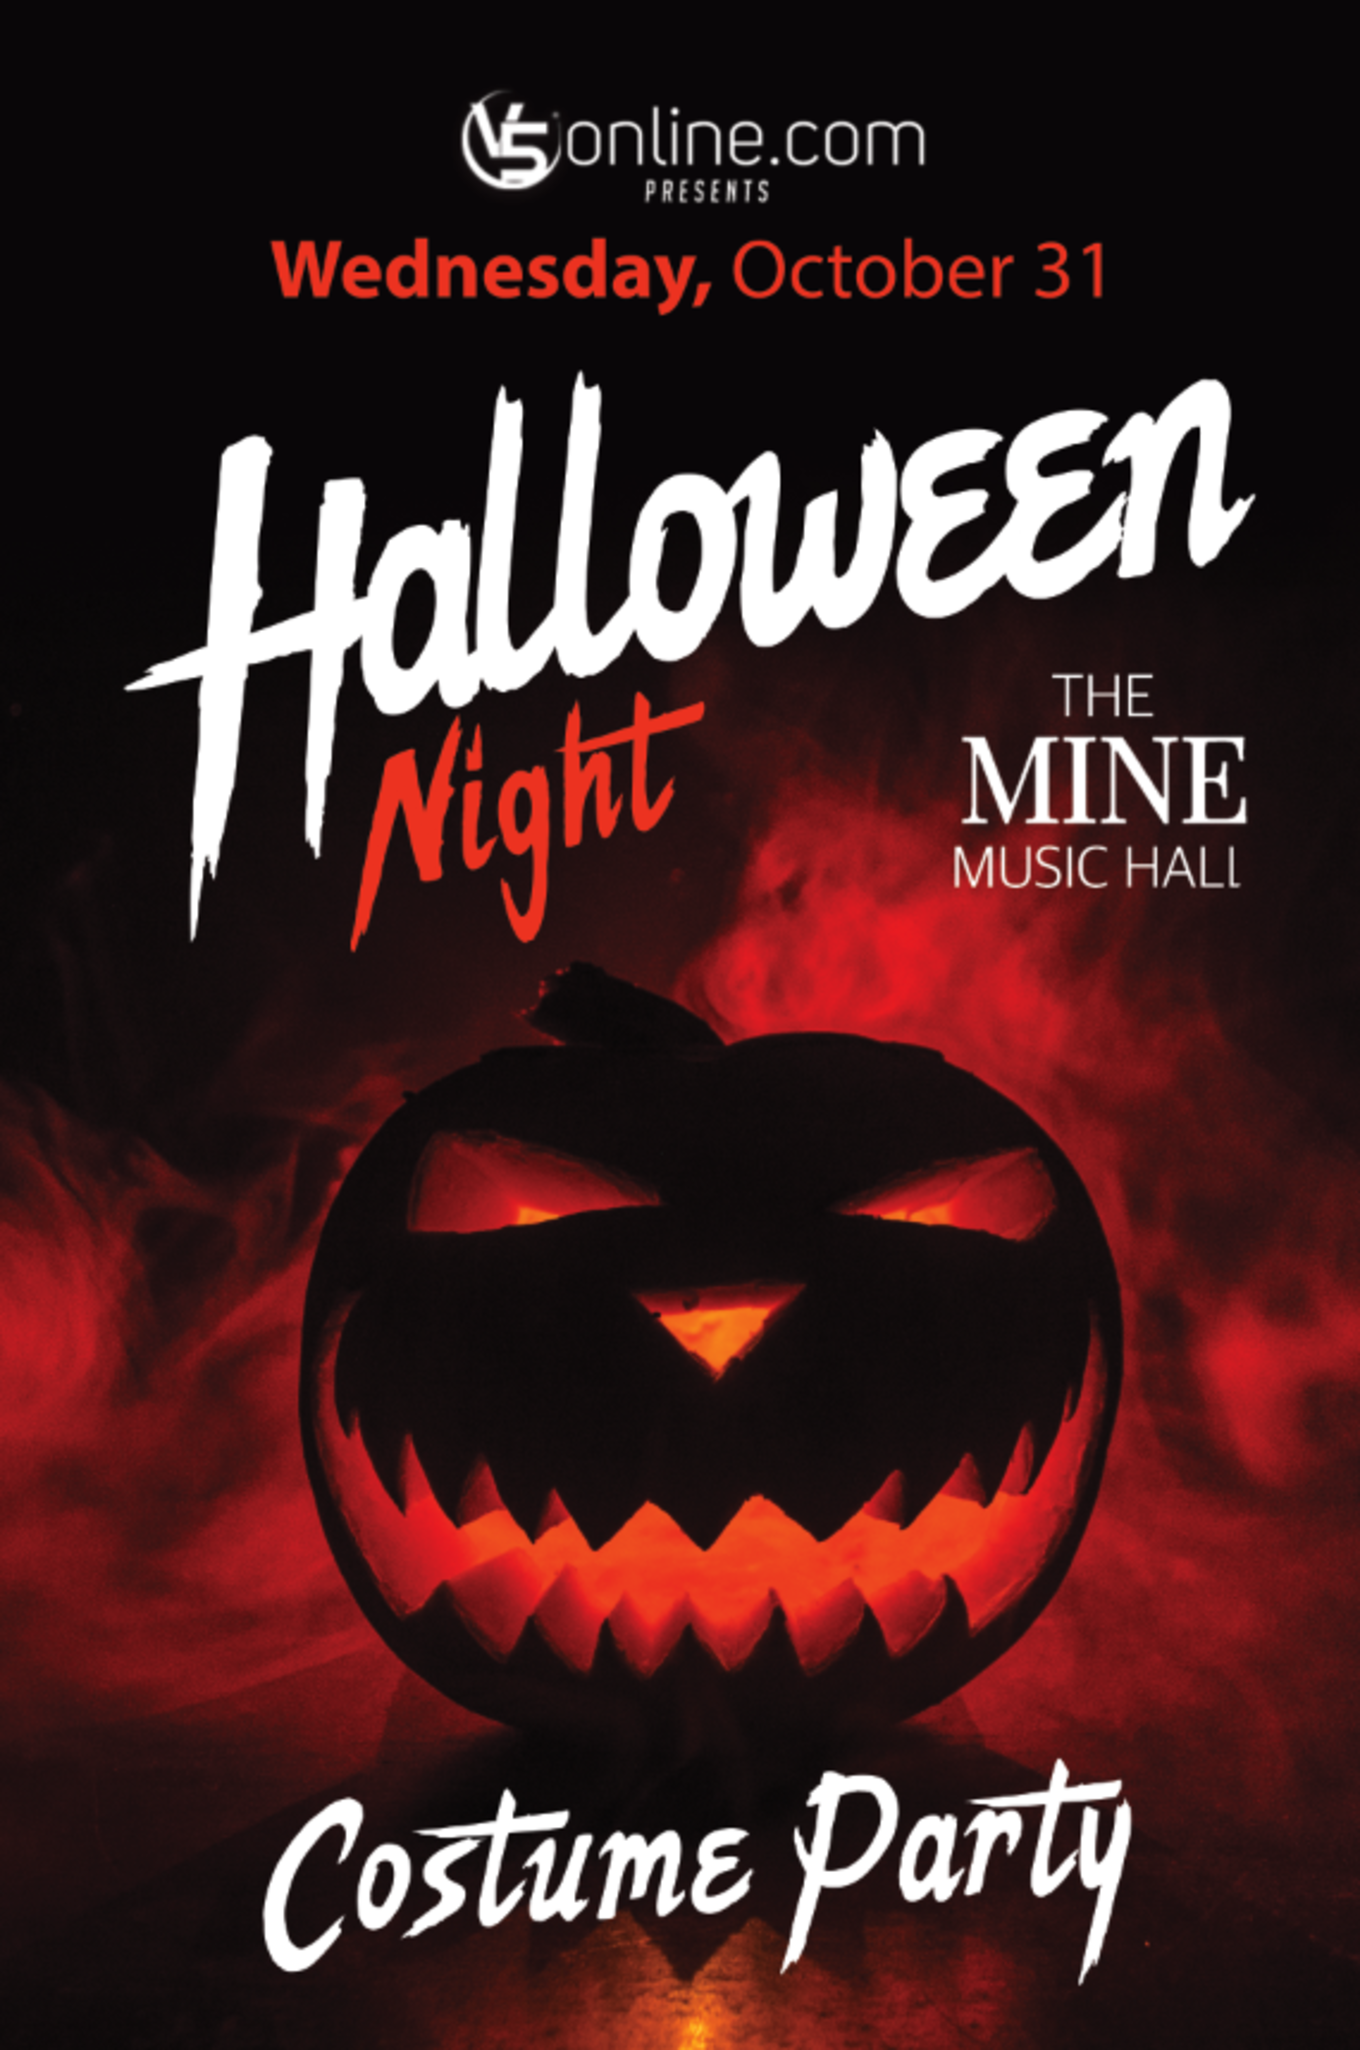 halloween night at the mine - tickets - the mine music hall, chicago